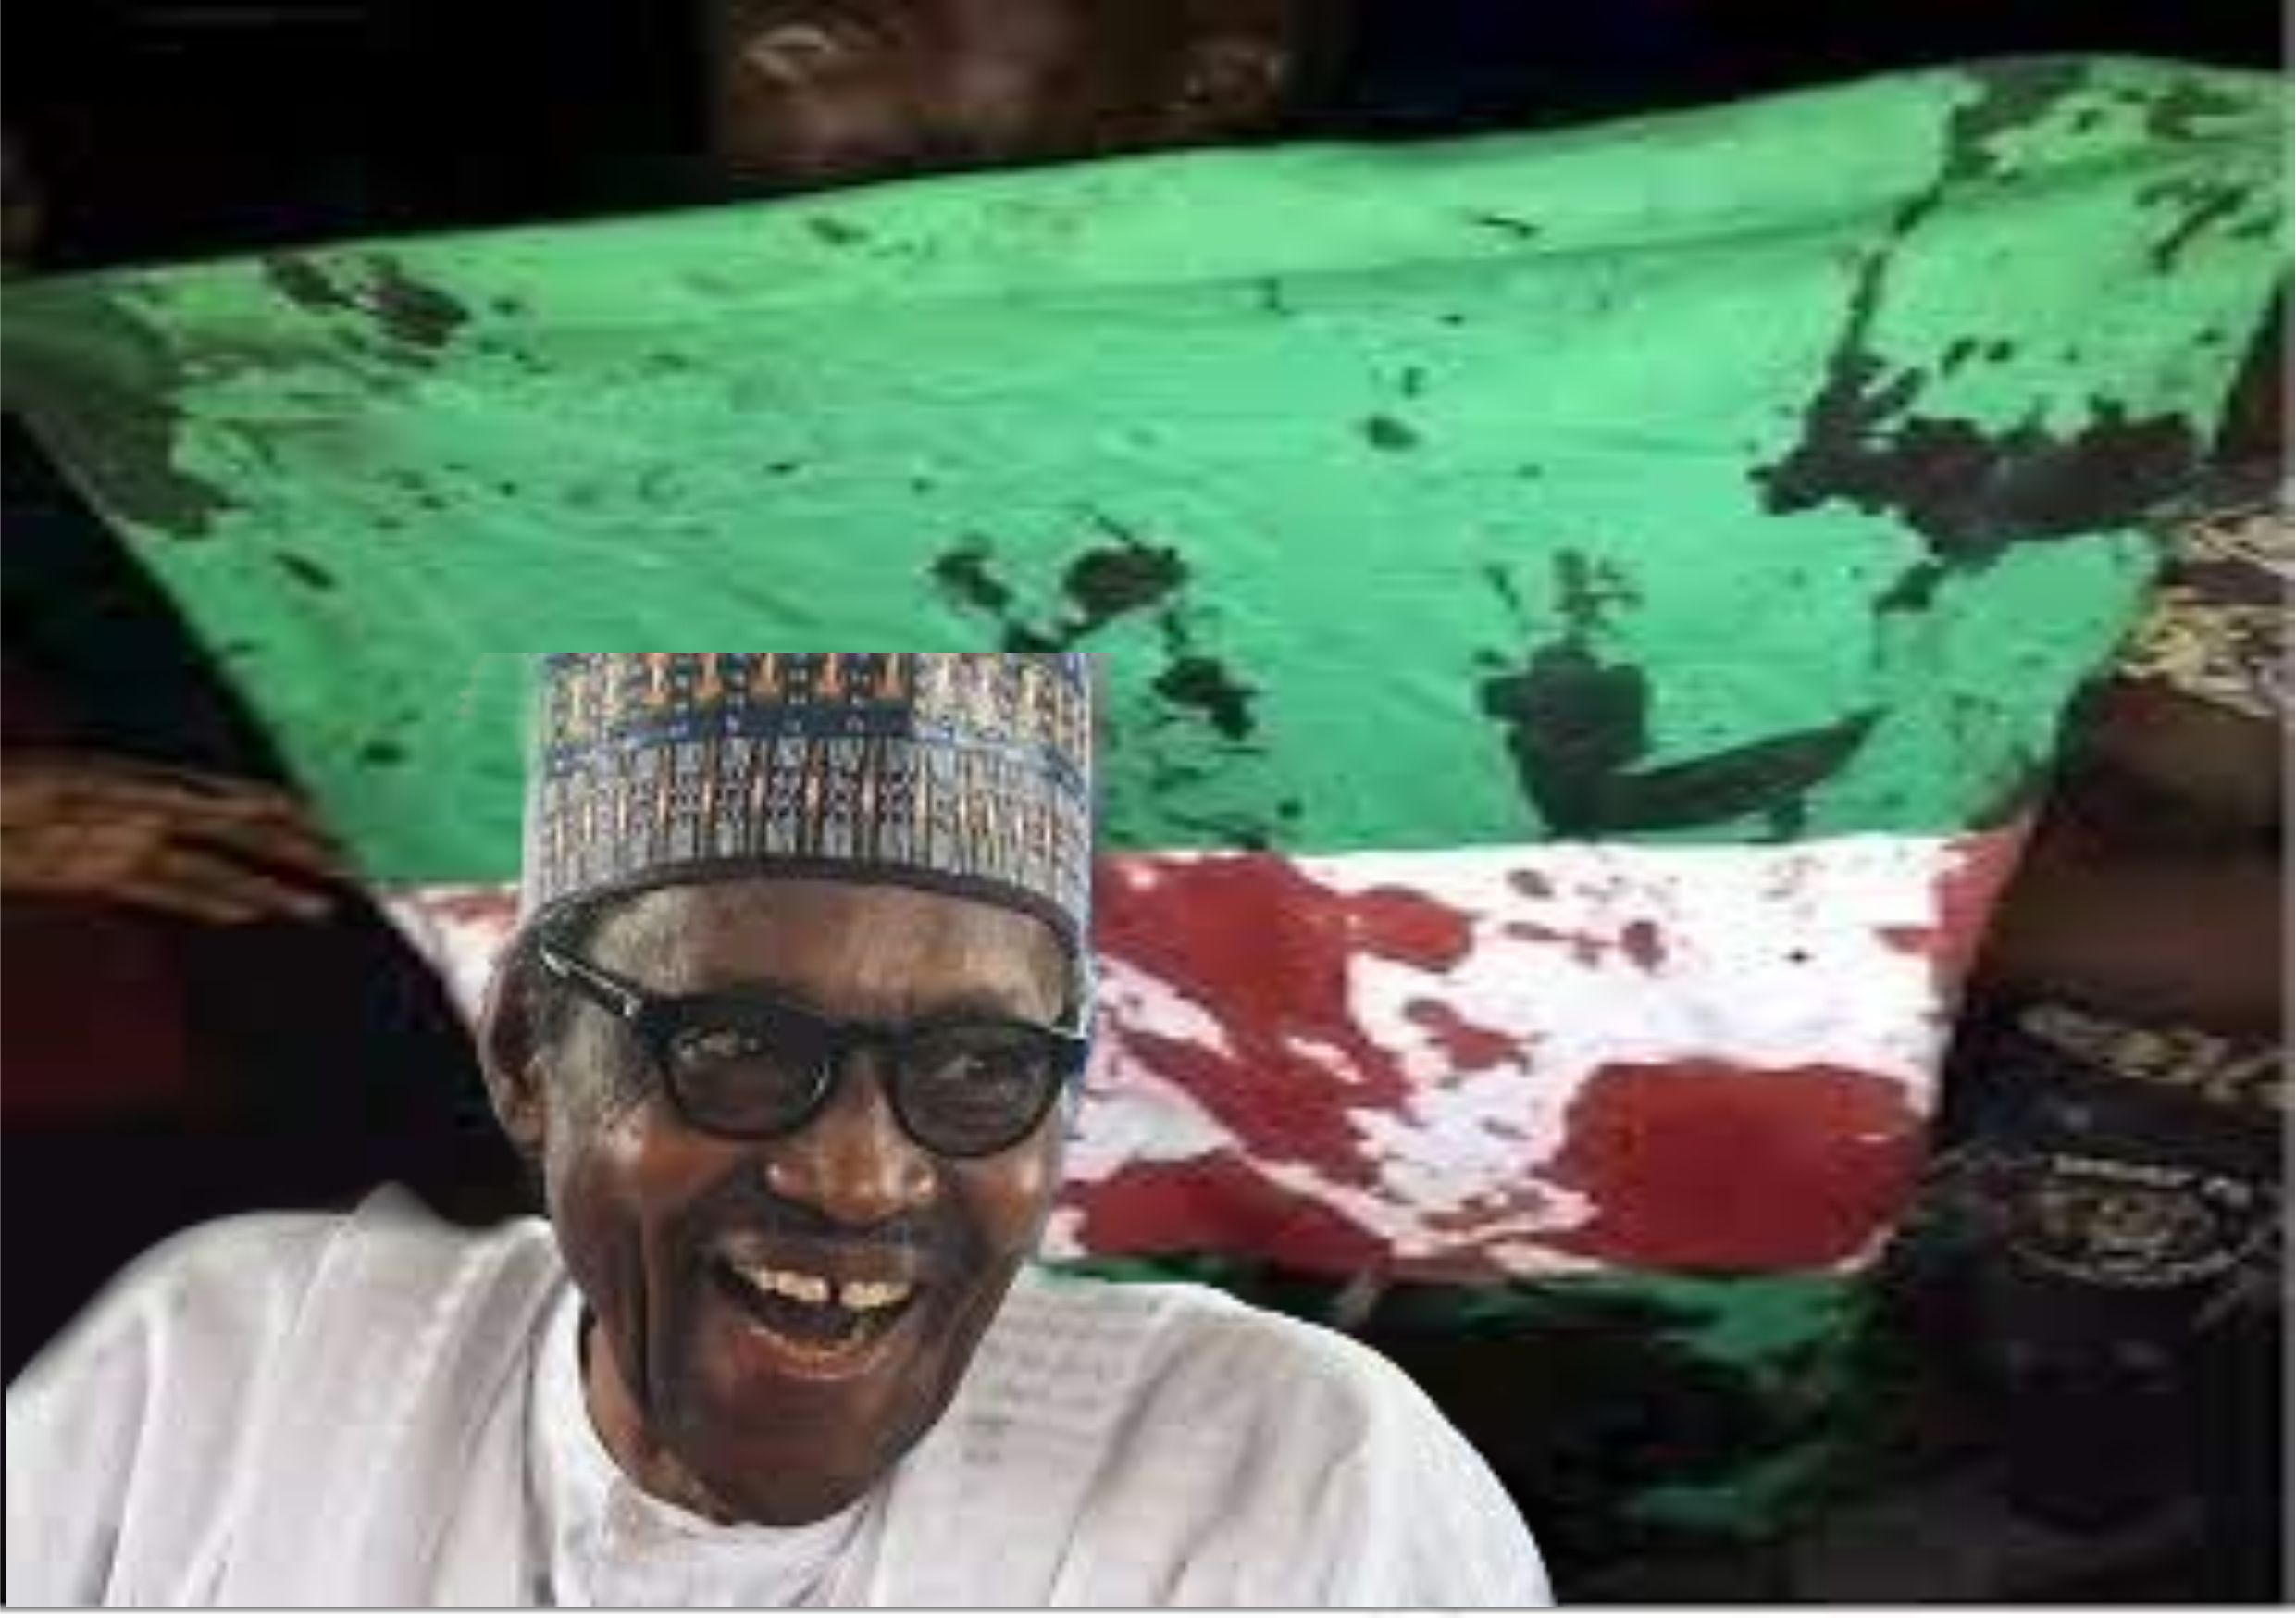 Buhari Needs A Heart, Not A Script, To Address Citizens, by Morak Babajide-Alabi